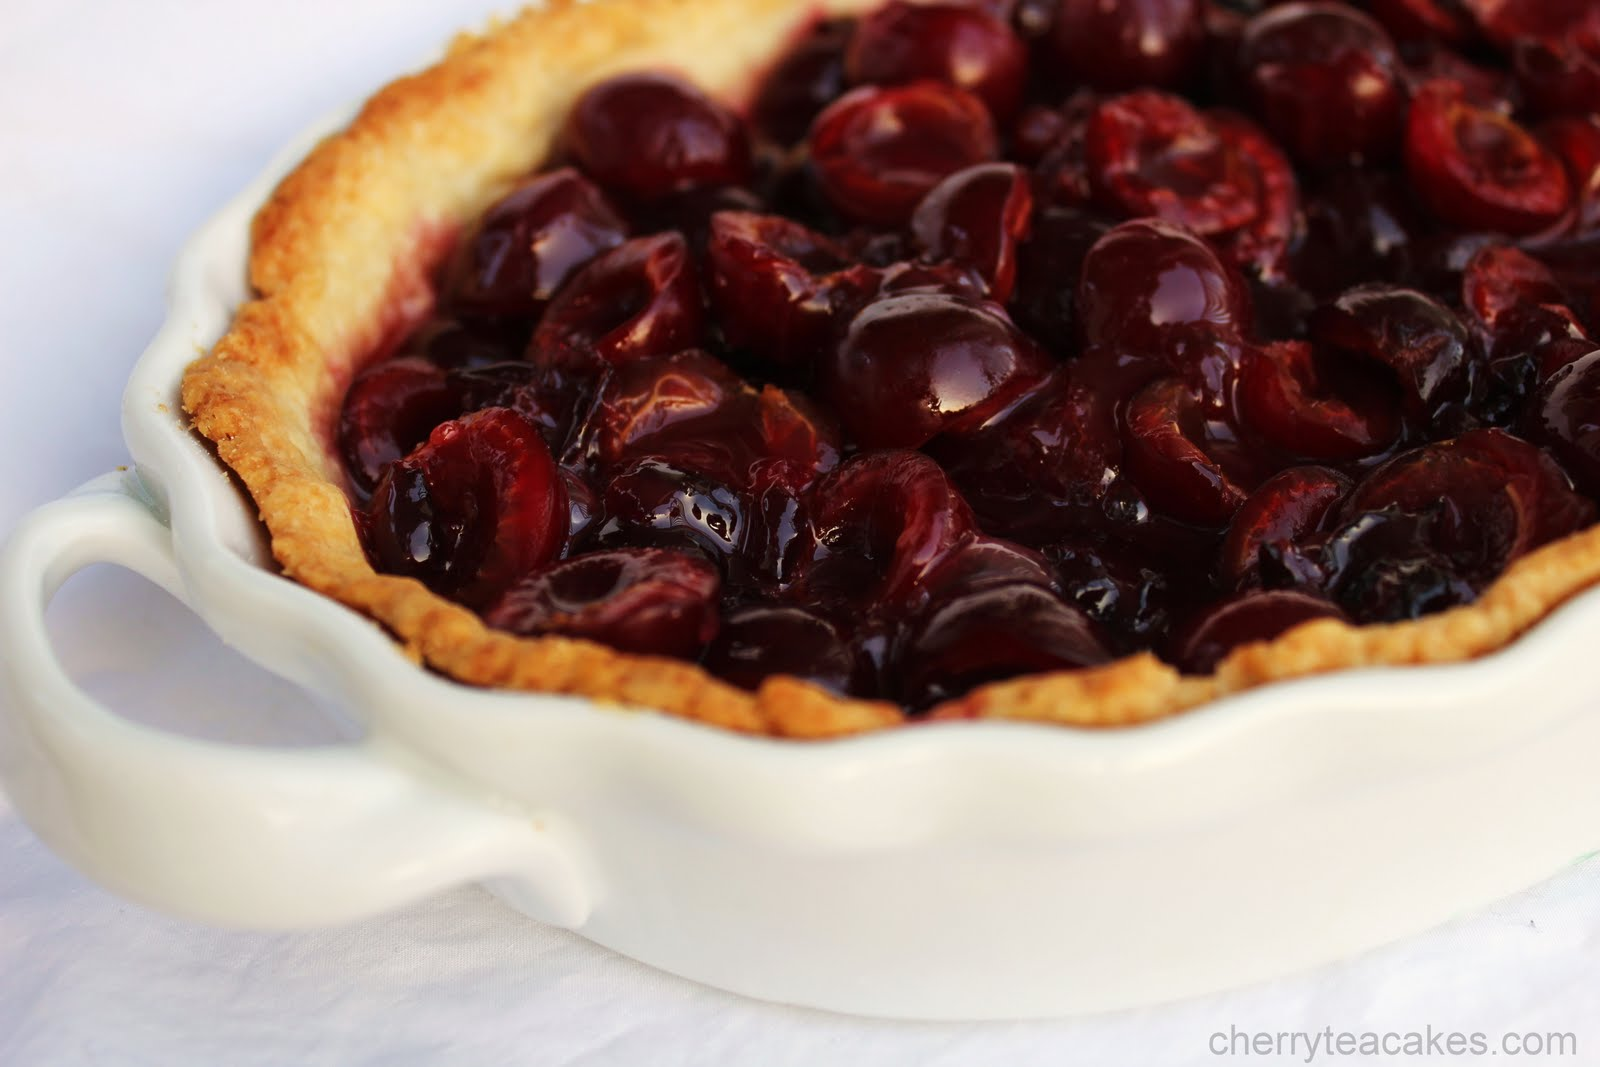 Cherry Tea Cakes: No Bake Cherry Pie with Buttermilk Pie Crust